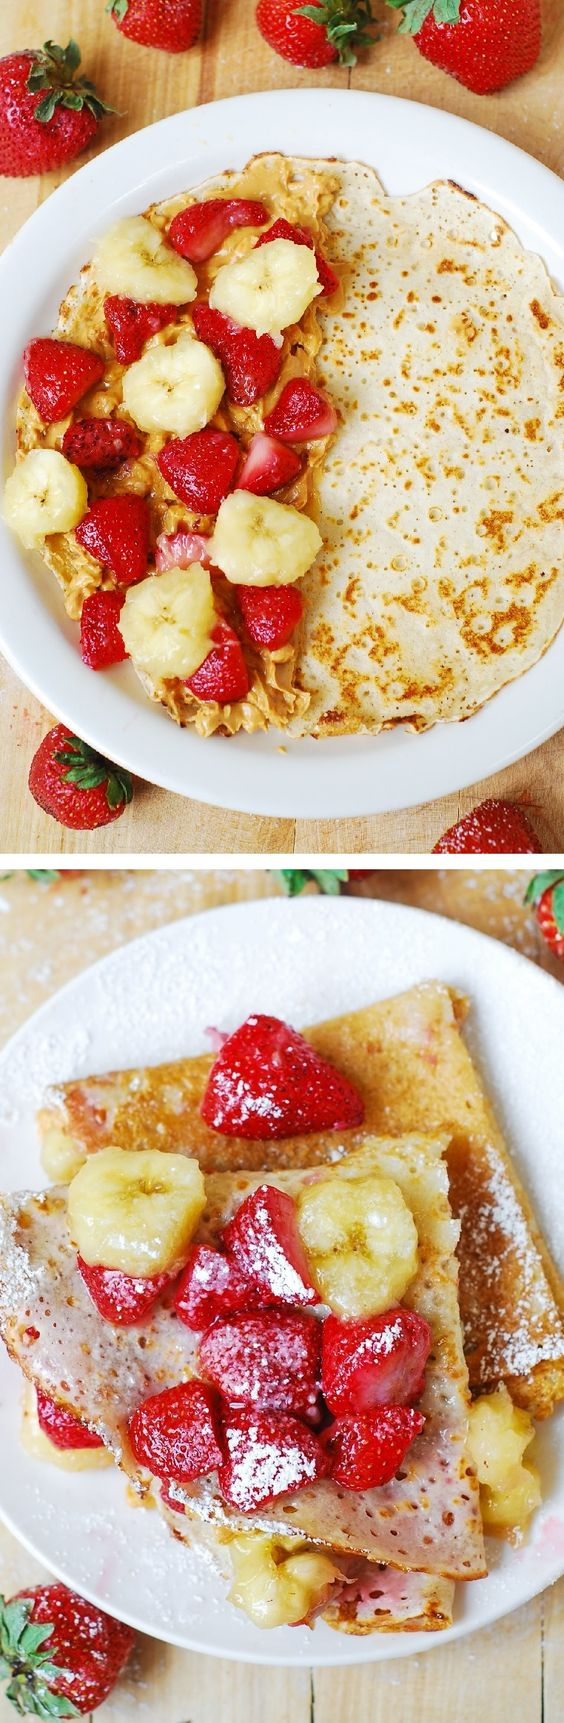 ... banana, and peanut butter | Recipe | Strawberry Banana, Crepes and